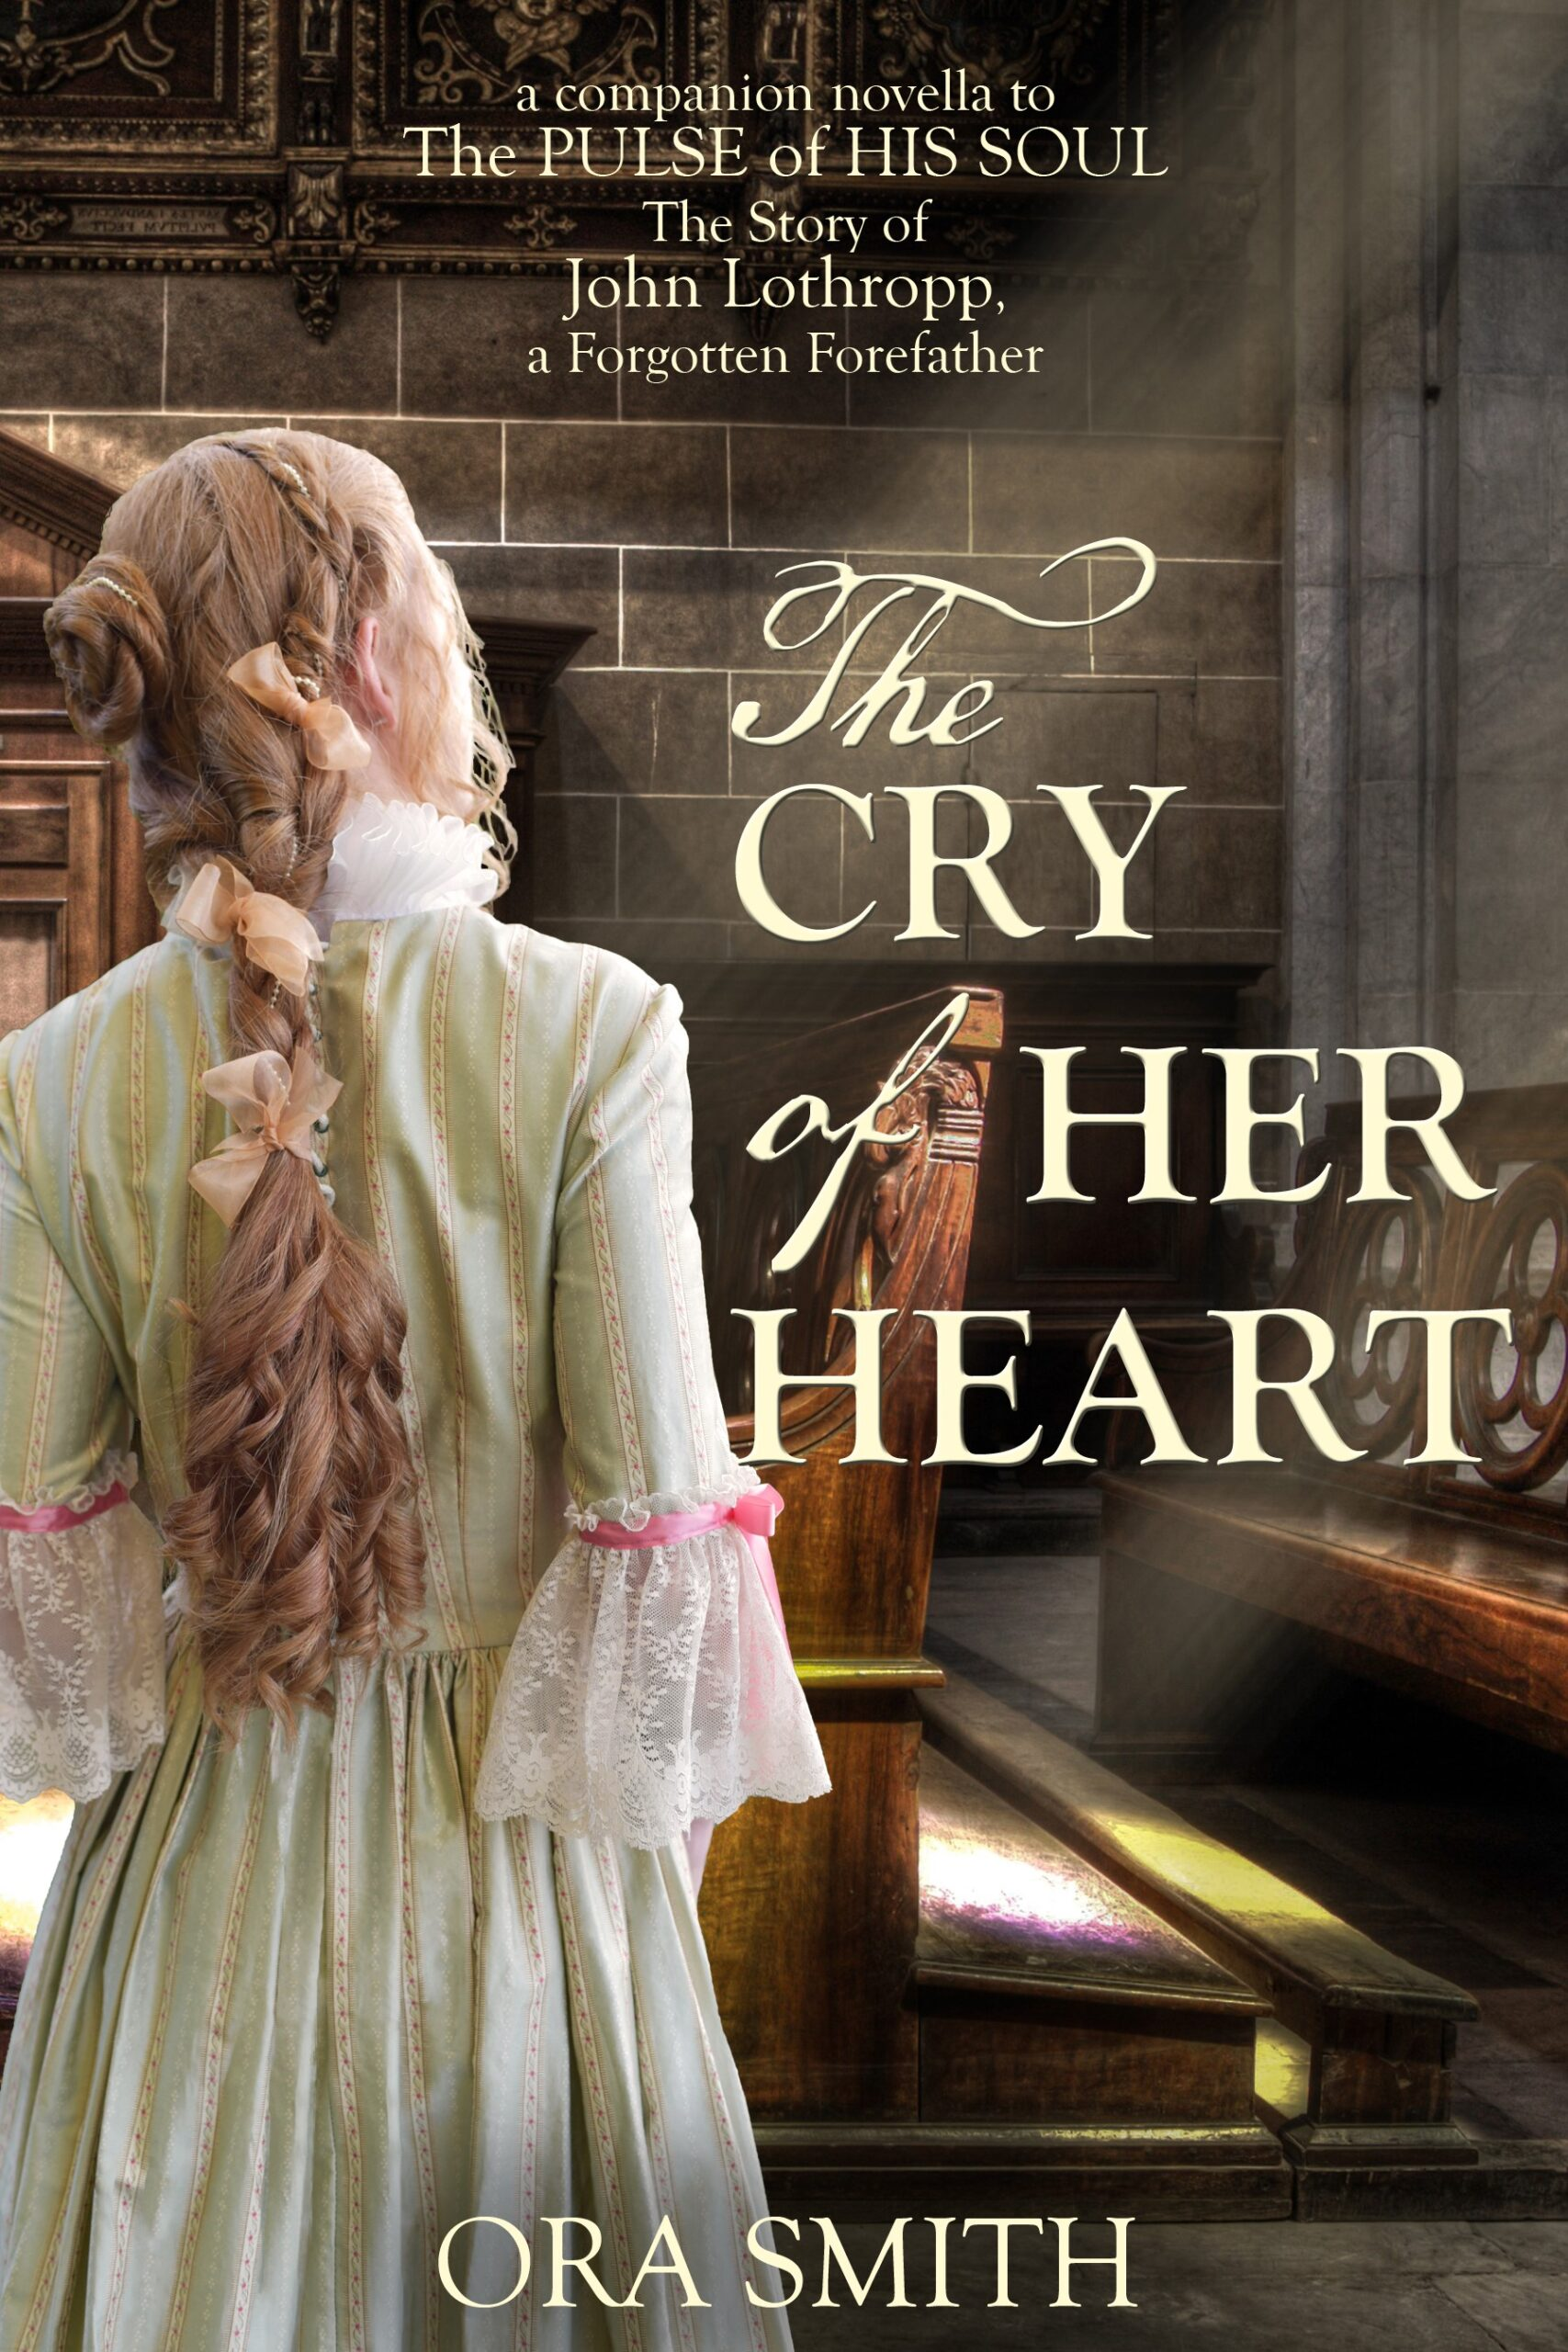 The Cry of Her Heart